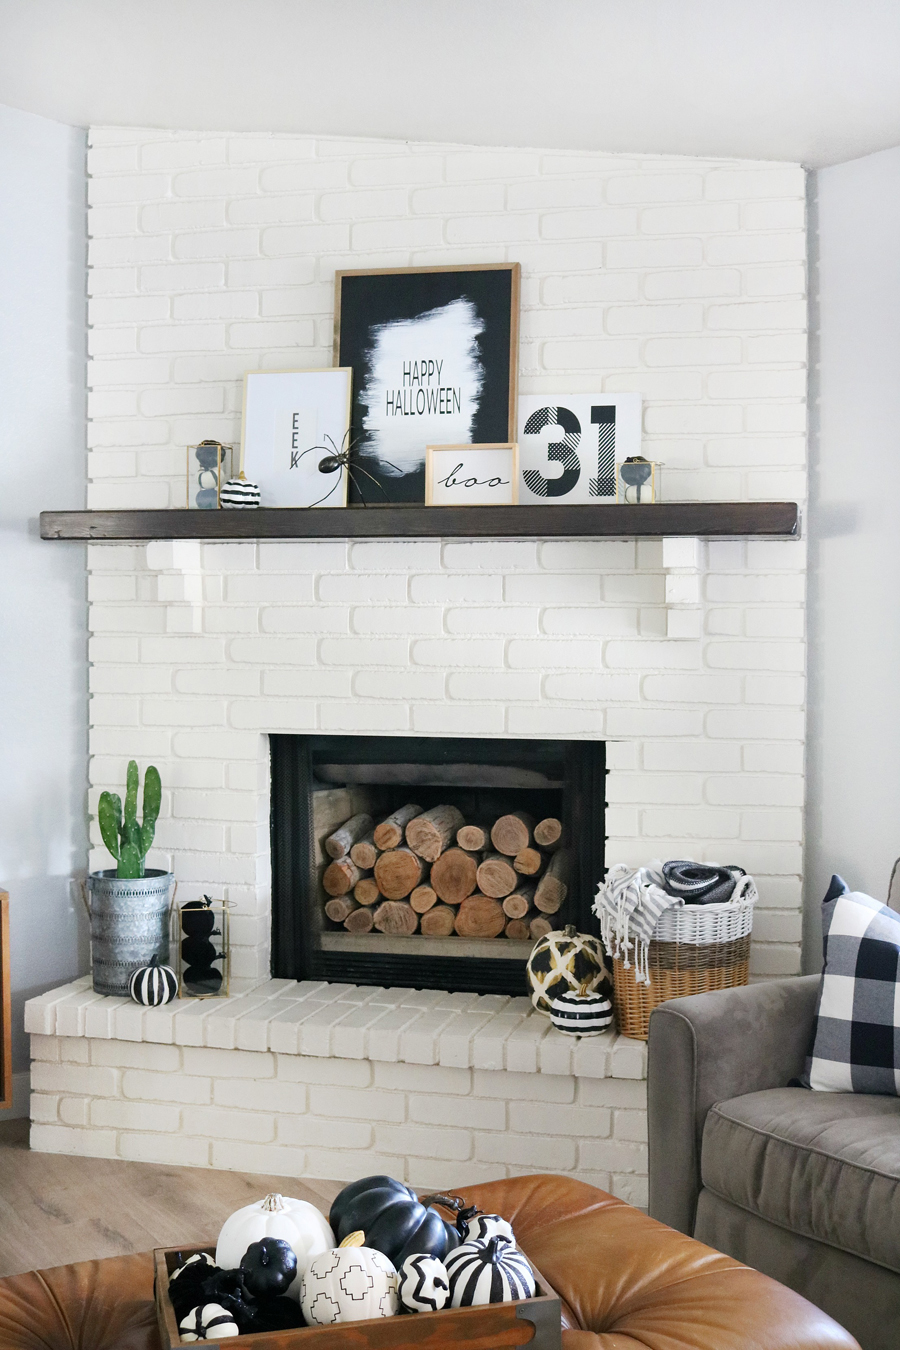 Simple Black & White Halloween Mantel Decor